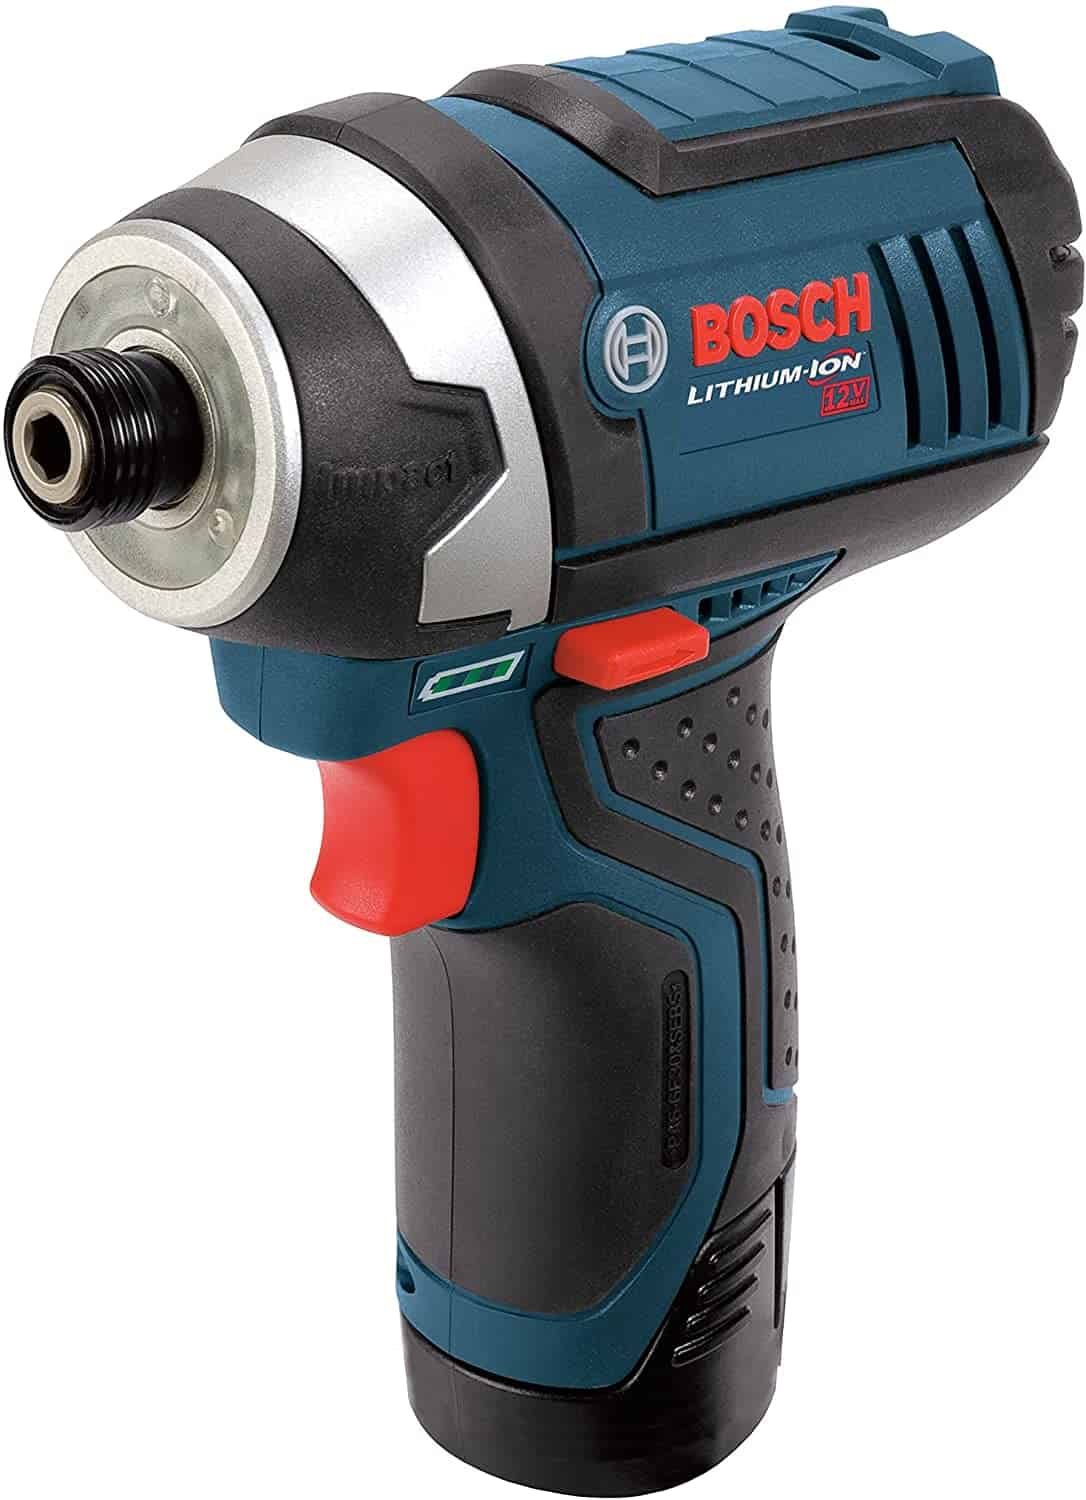 Best for lightweight professional work- BOSCH PS41-2A 12V Hex Impact Driver Kit